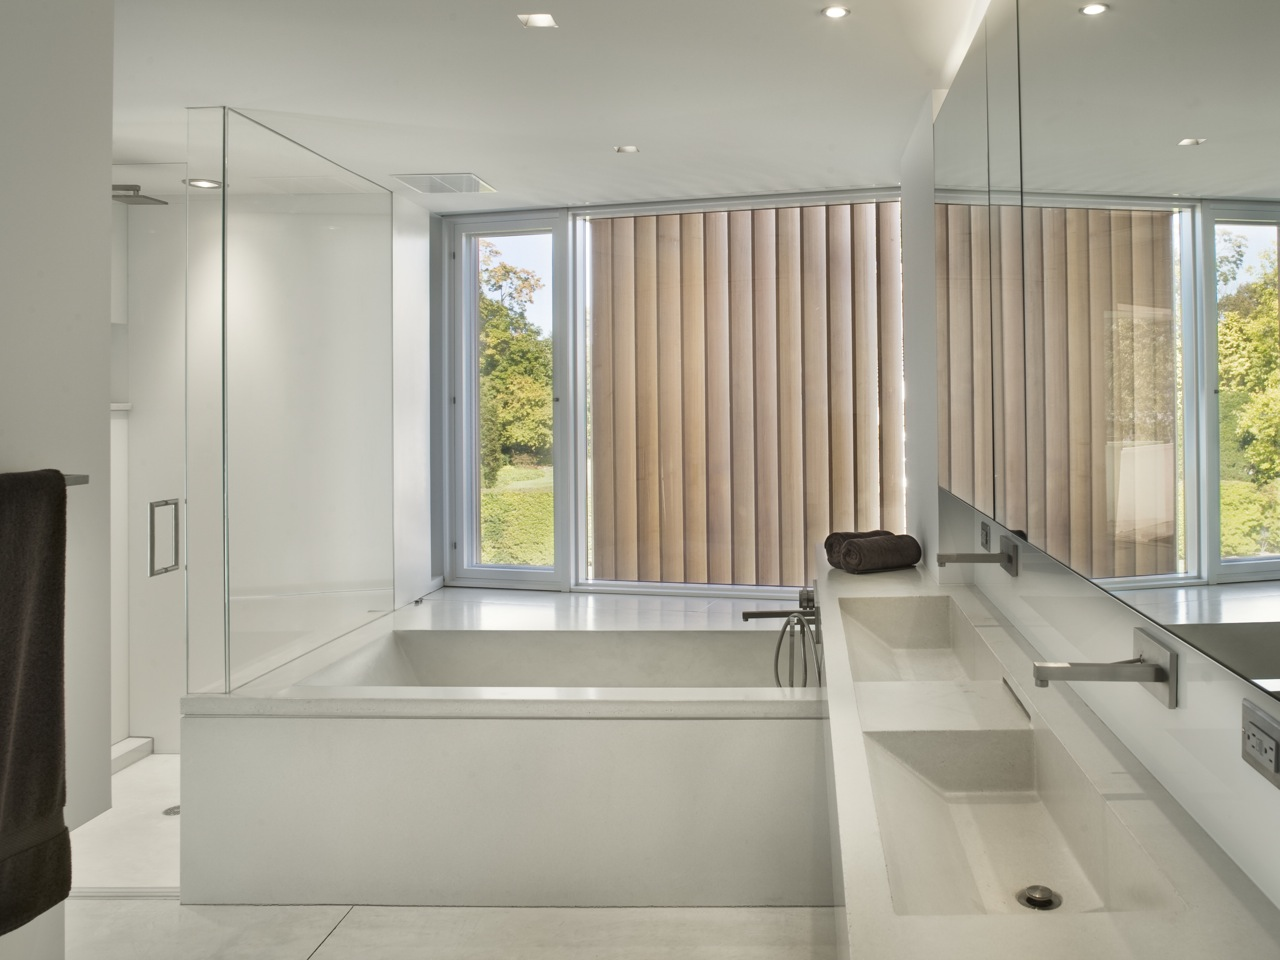 Double Sinks, Bath, Shower, Oceanfront Residence in Connecticut